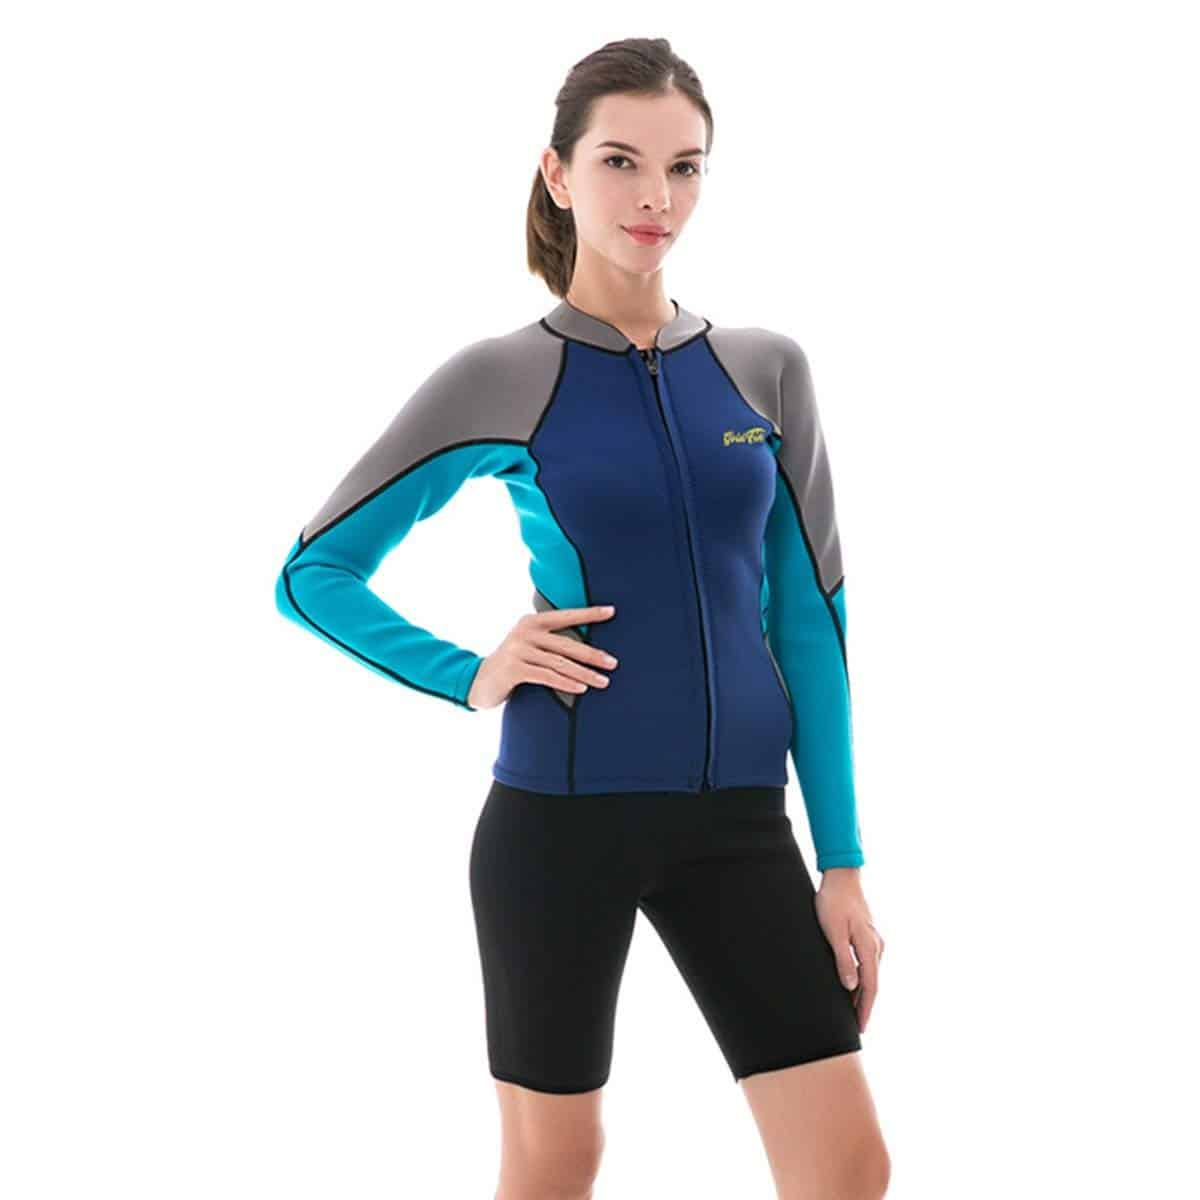 Goldfin Wetsuit Top Jacket Neoprene for Women 2mm Long Sleeves Front Zip  Diving Snorkeling Surfing Kayaking Canoeing SW004 1a49b69f3